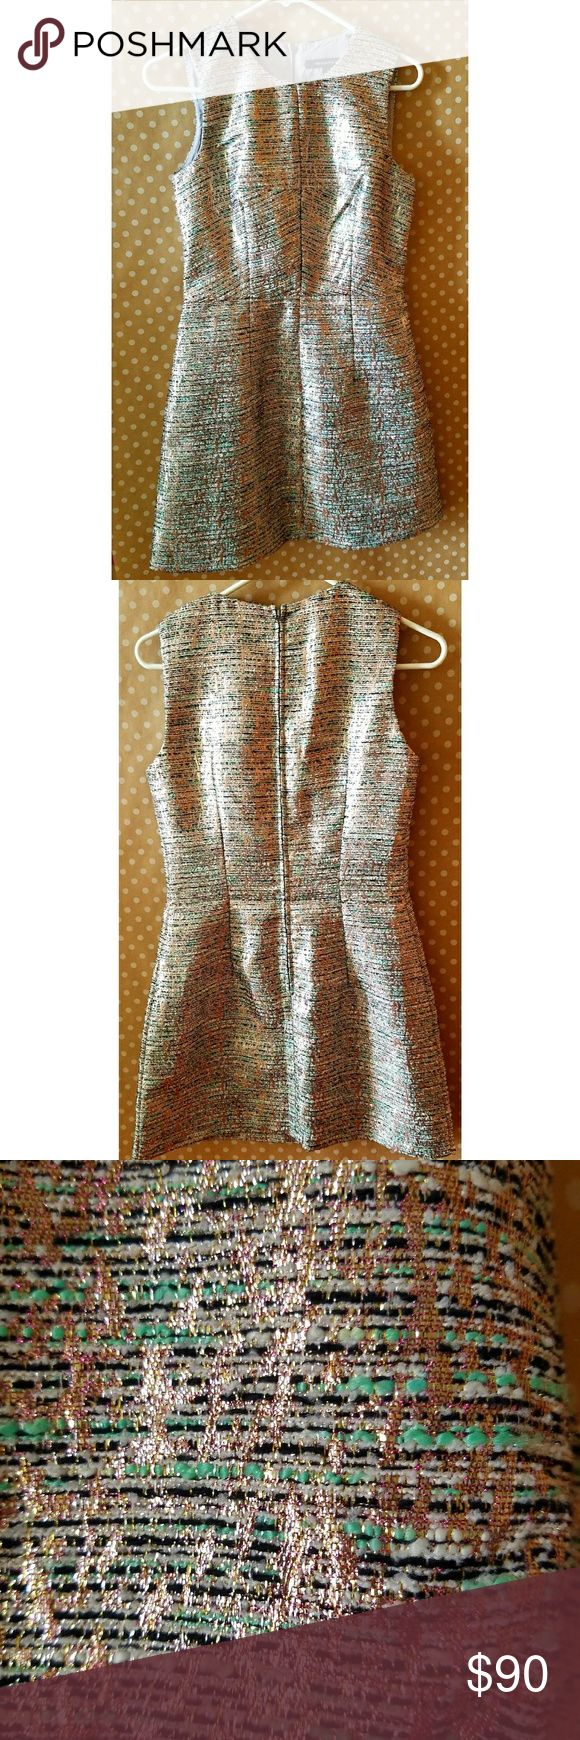 French Connection Metallic Cocktail Dress Tweed fit & flare fun summer mini dress.  Like new condition. French Connection Dresses Mini